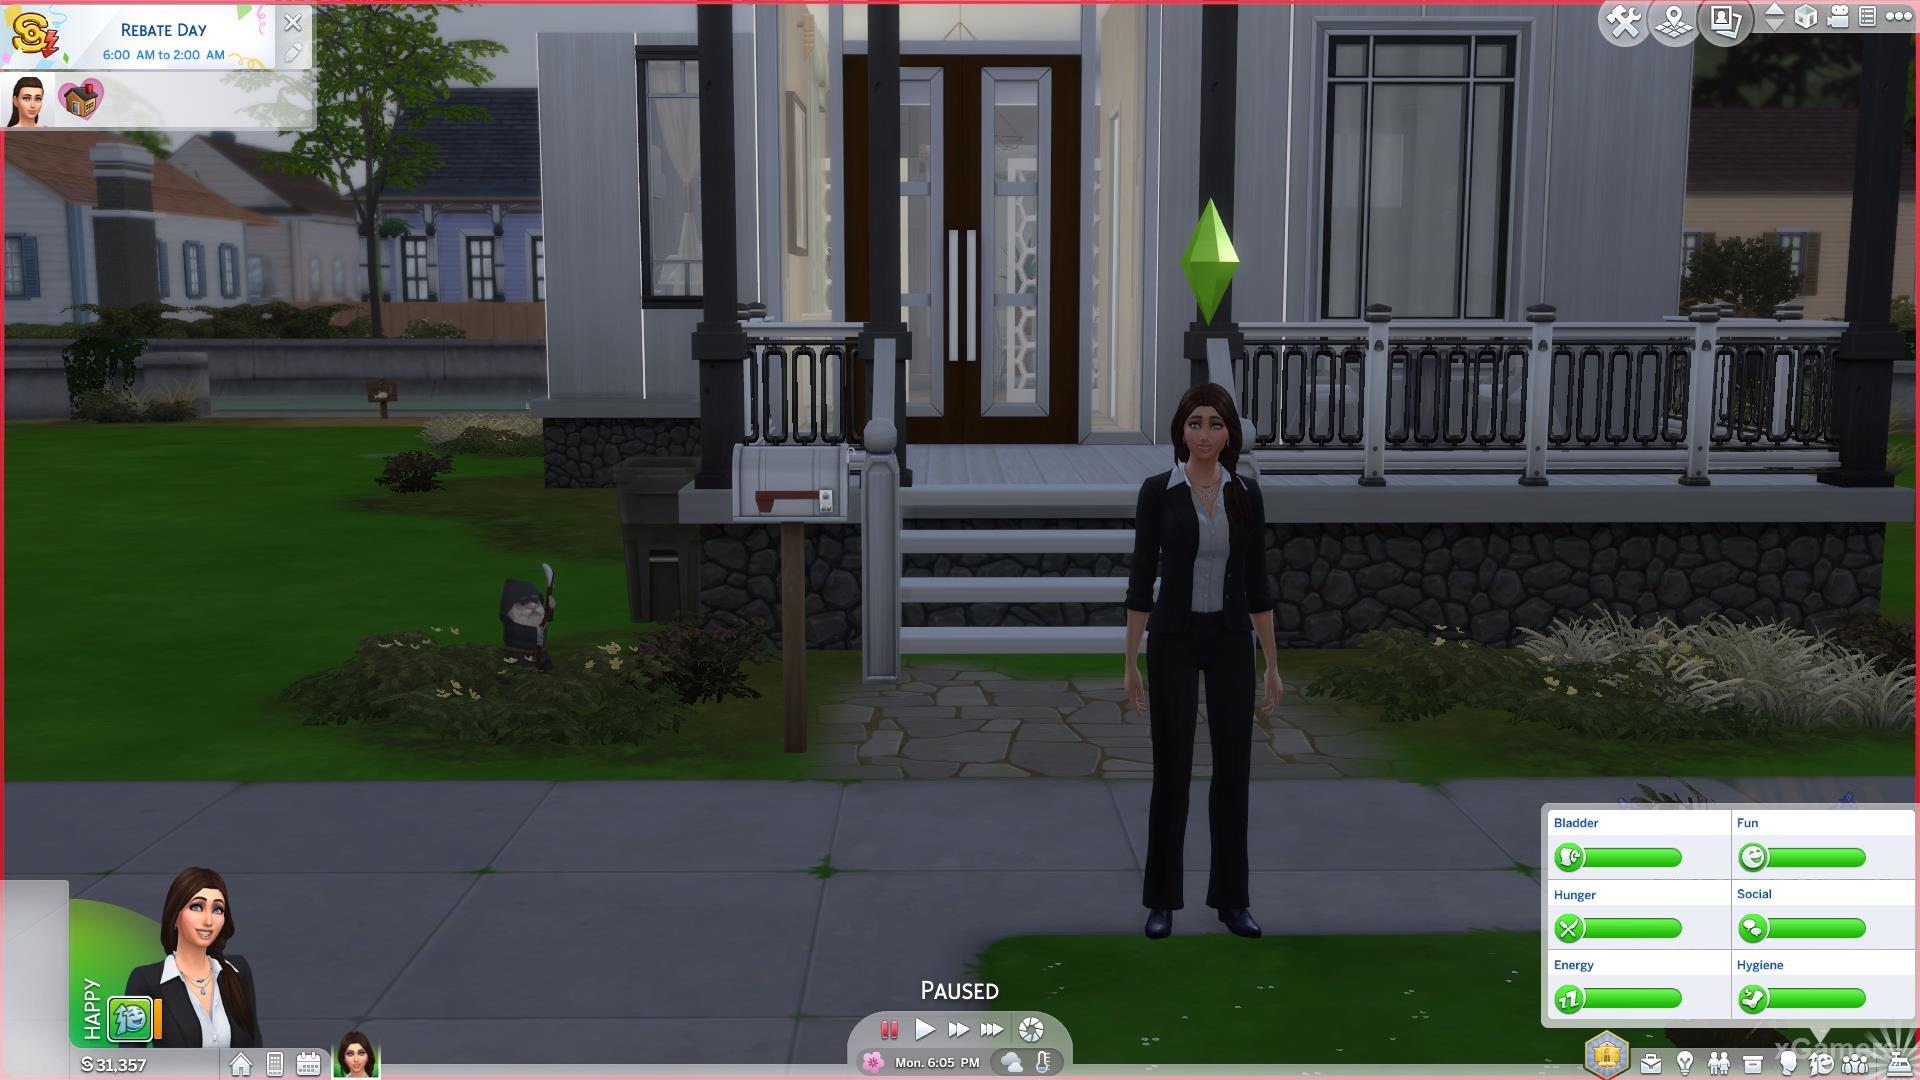 Using cheat code in Sims 4 - Business Career